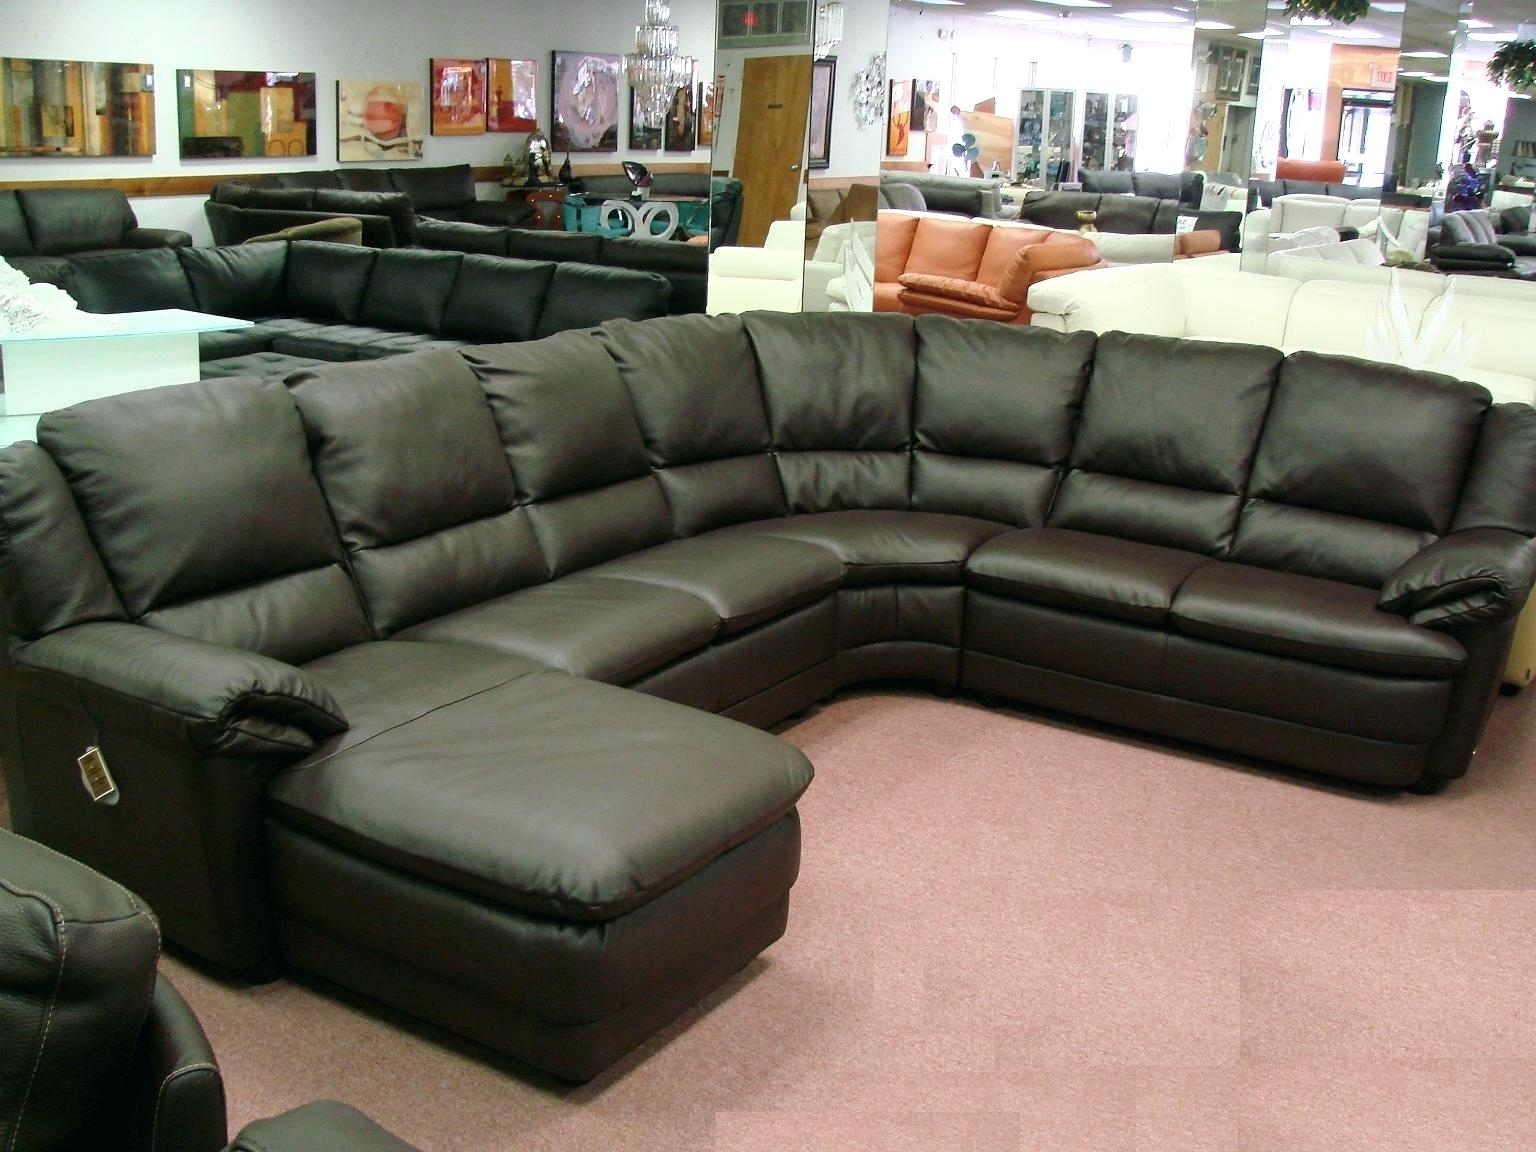 Popular Sectional Sofa Sale Sa Couches For Near Me Liquidation Toronto Inside Sectional Sofas At Calgary (View 8 of 15)